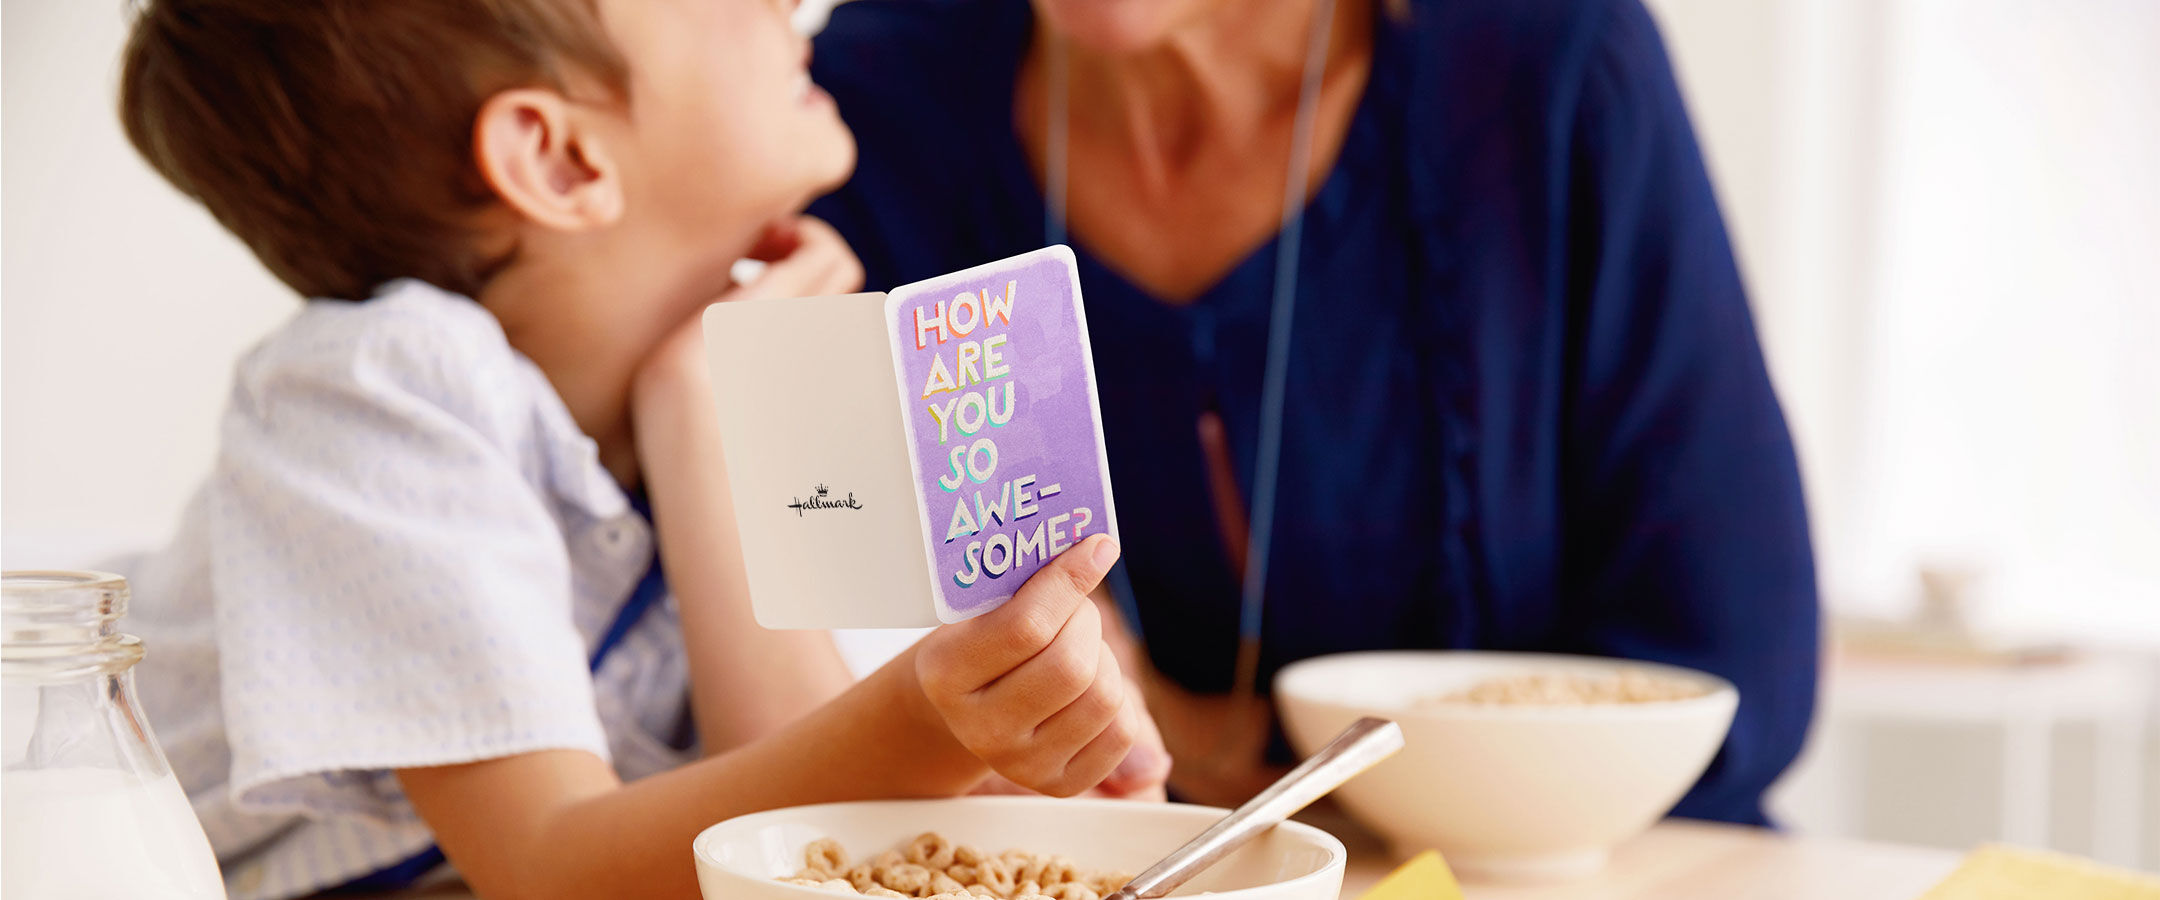 Brighten Someones Day With Cards That Make Everyday Moments Special